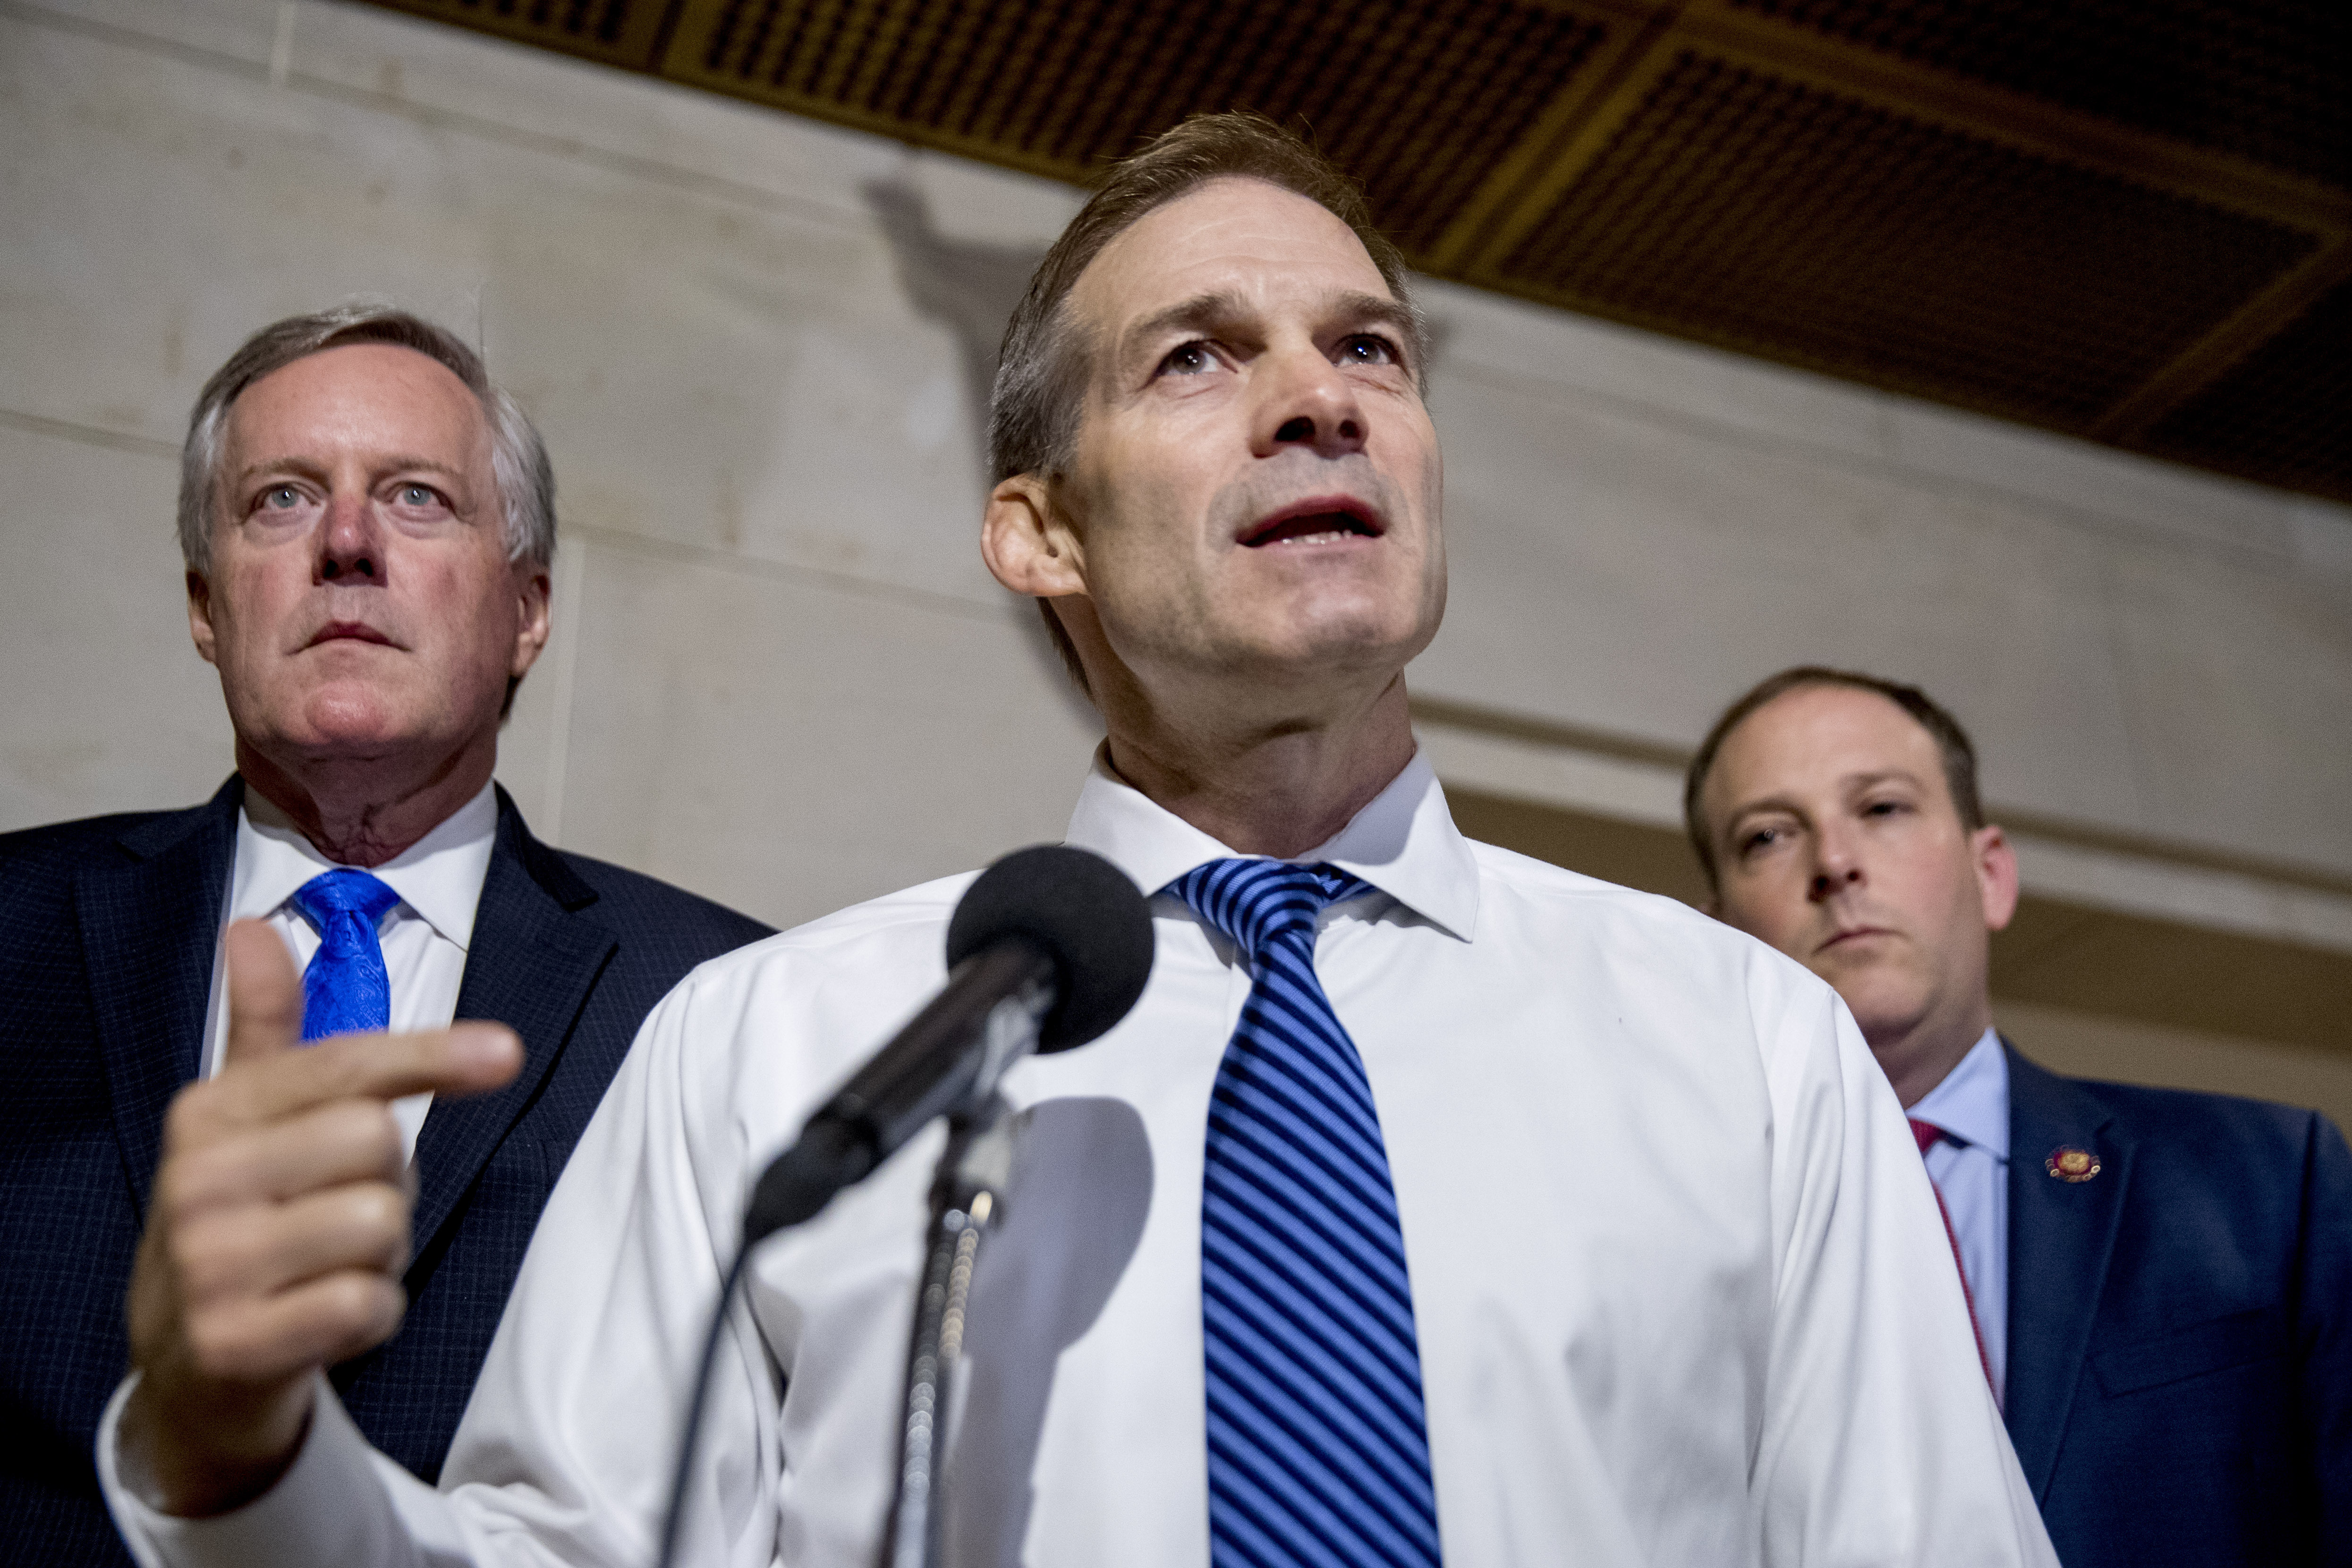 Rep. Mark Meadows, R-N.C., Rep. Jim Jordan, R-Ohio, and Rep. Lee Zeldin, R-N.Y., hold a press conference on Capitol Hill on Oct. 15 while Deputy Assistant Secretary of State George Kent testifies behind closed doors in the House impeachment inquiry into President Trump. (Photo: Andrew Harnik/AP)